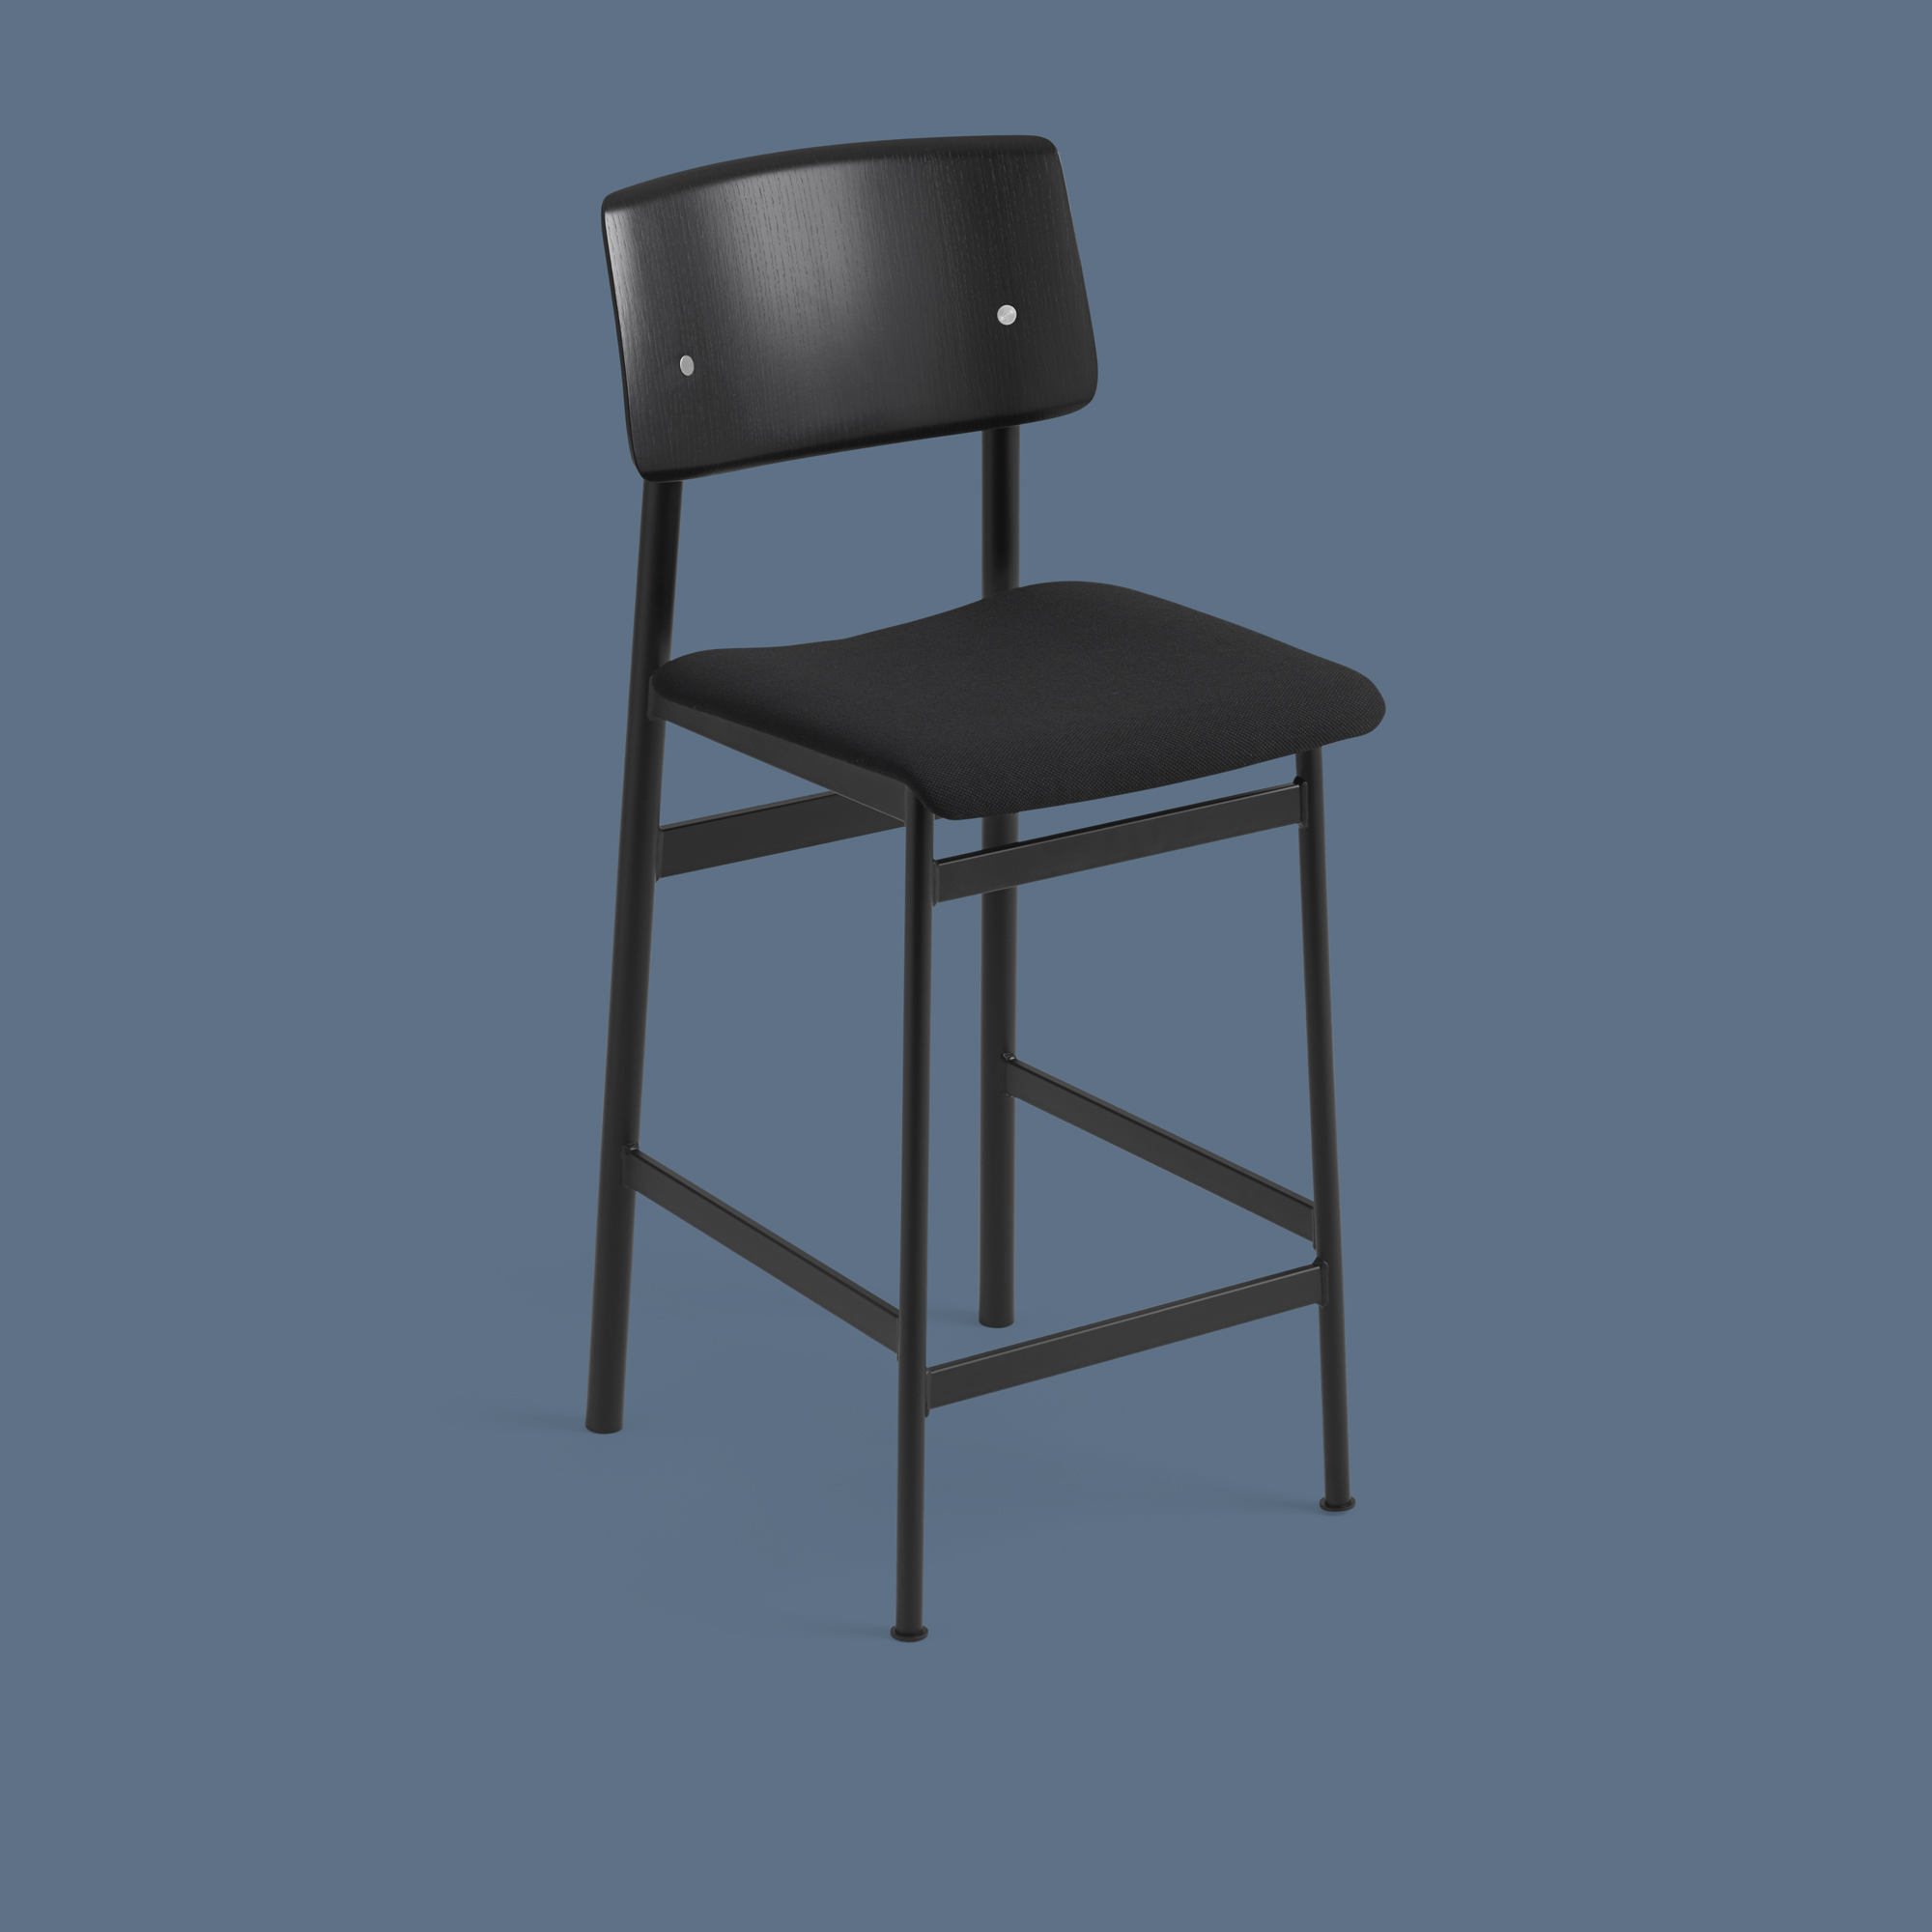 Loft Bar Stool 65 cm BlackOak